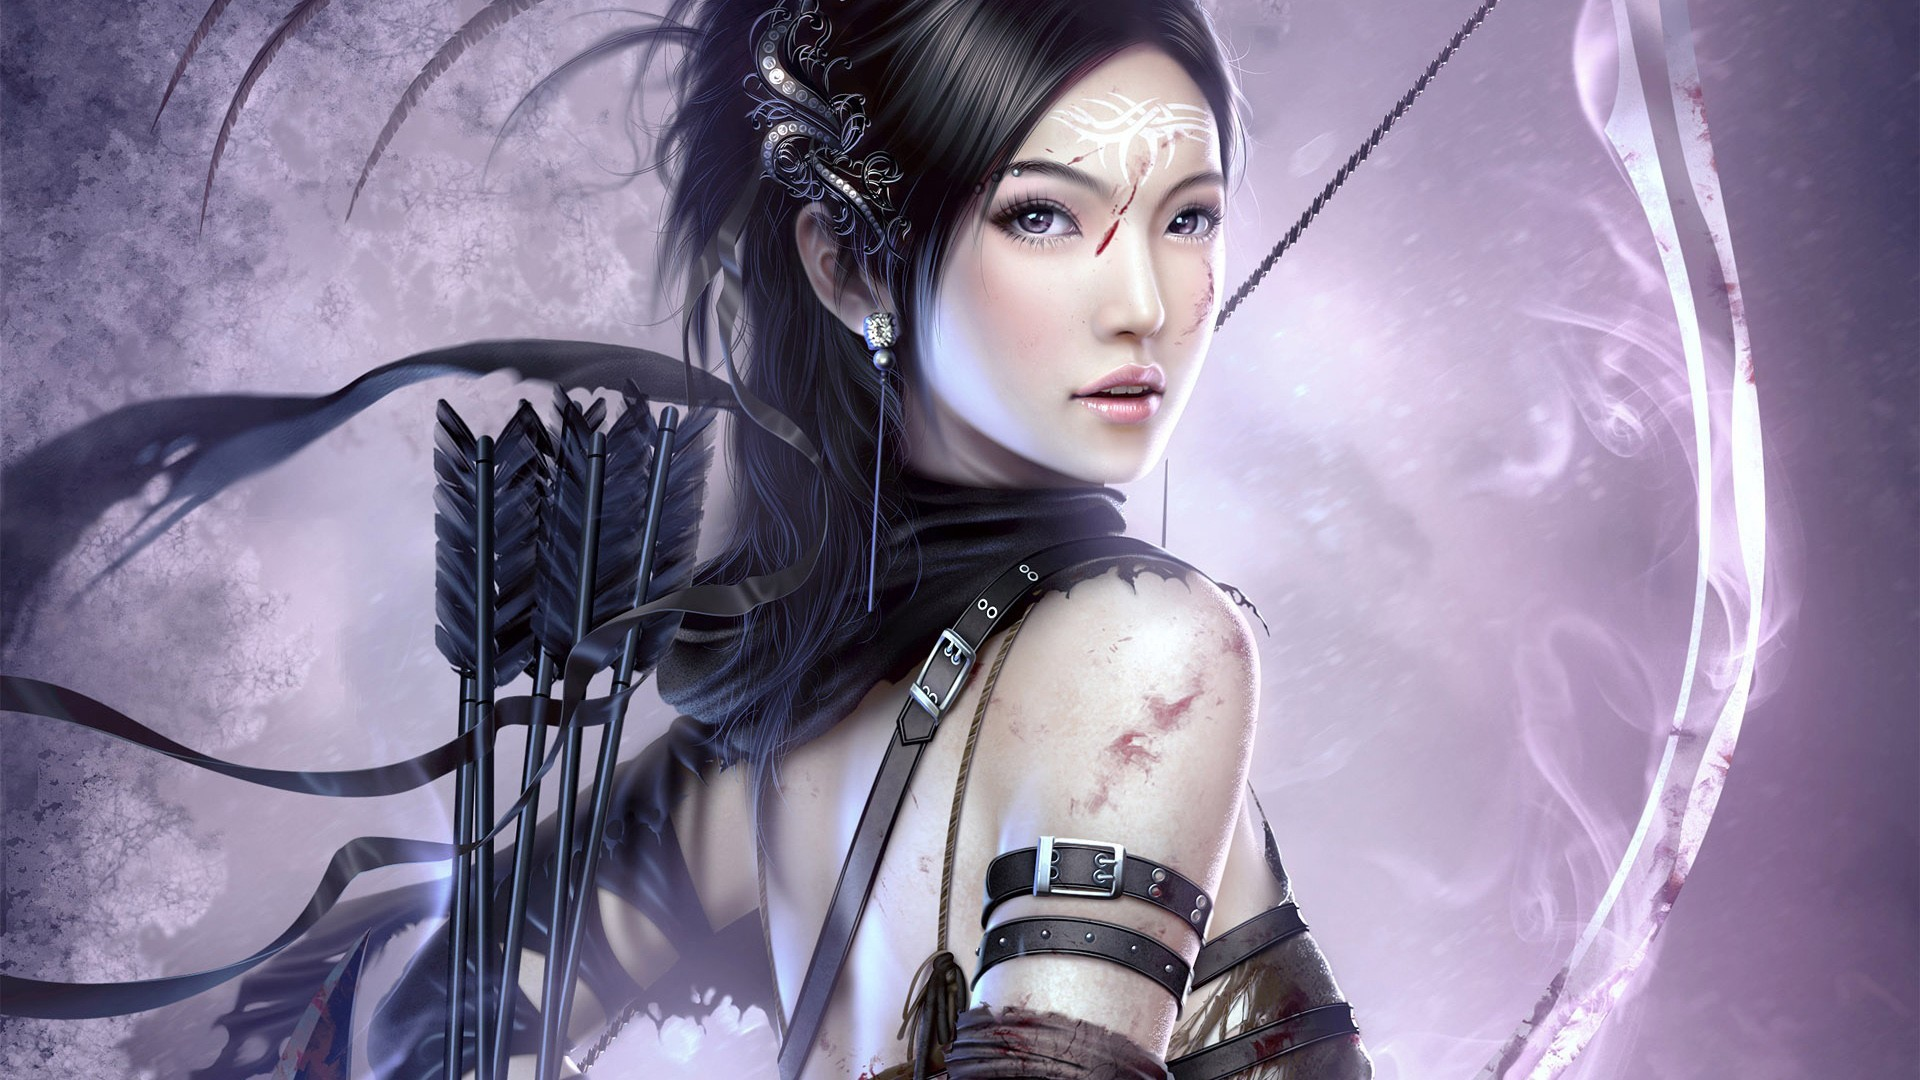 woman Archers Chinese asians HD Wallpaper